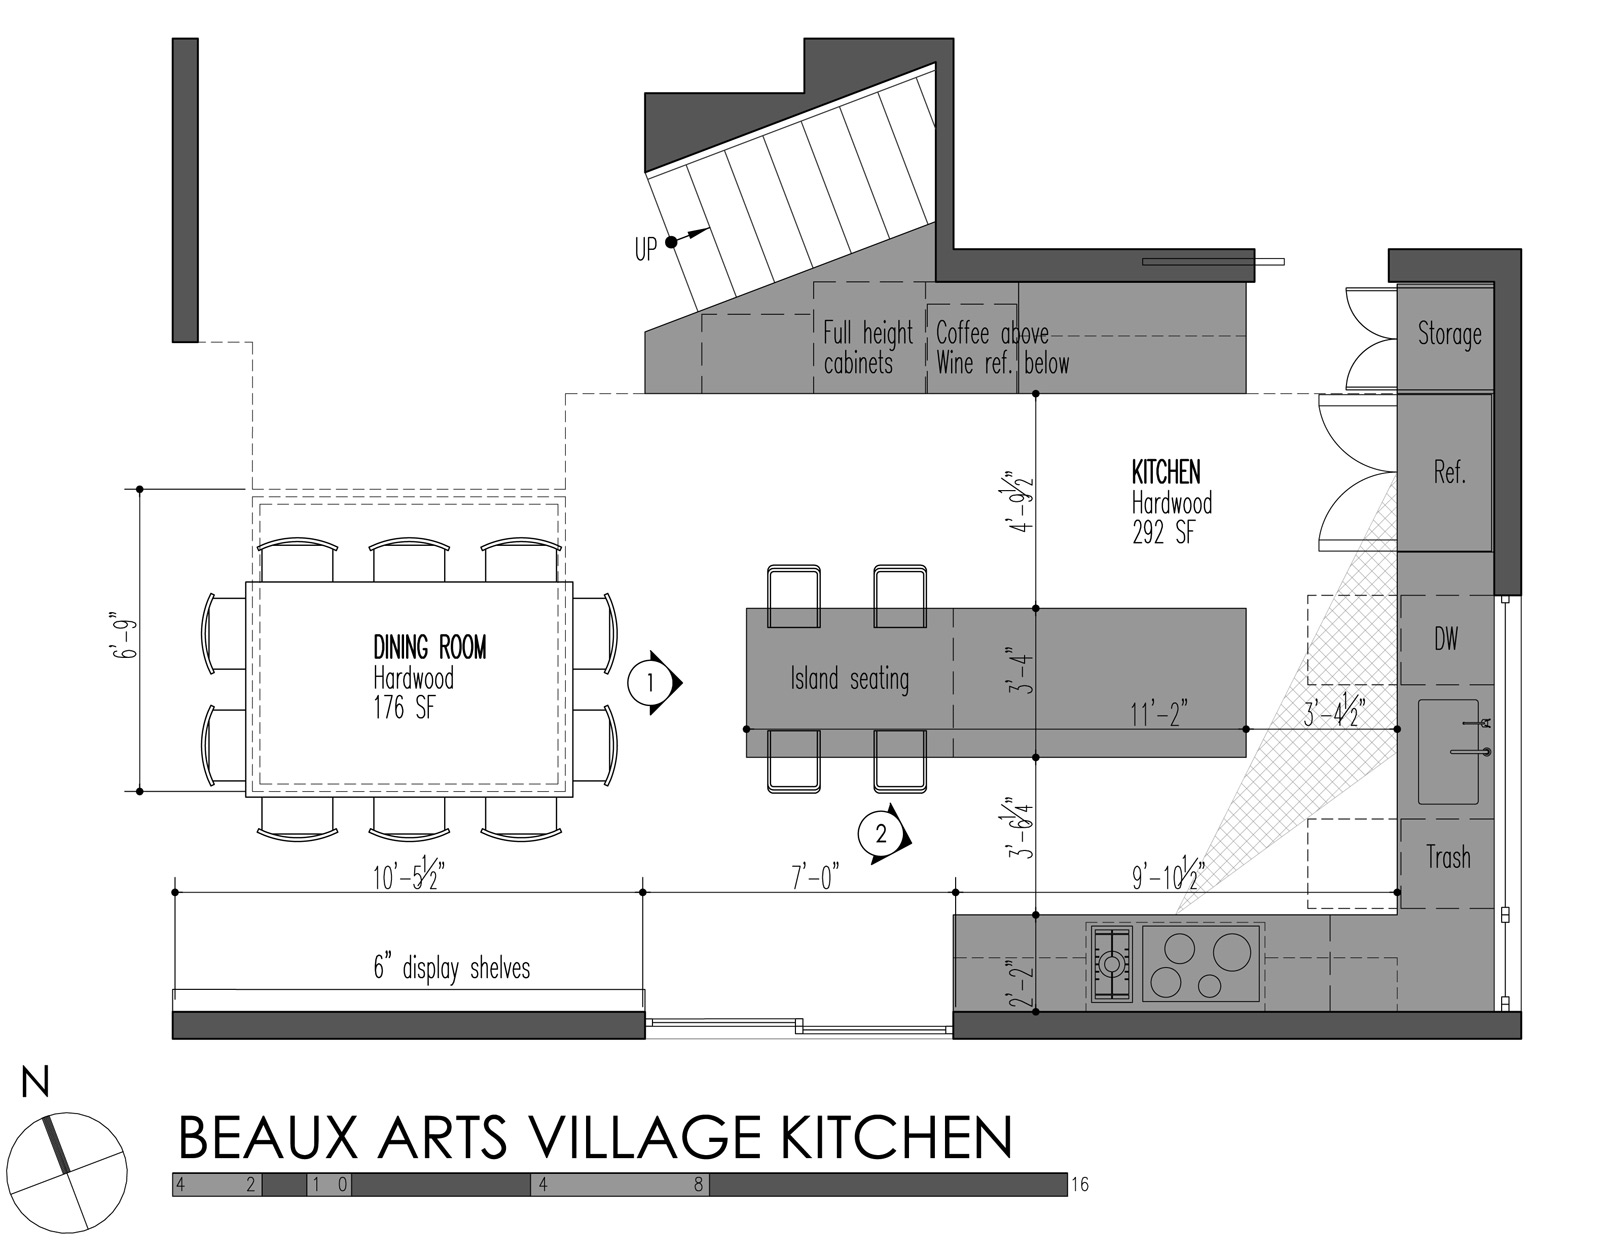 build llc beaux arts village kitchen plan - Standard Depth Of Kitchen Cabinets